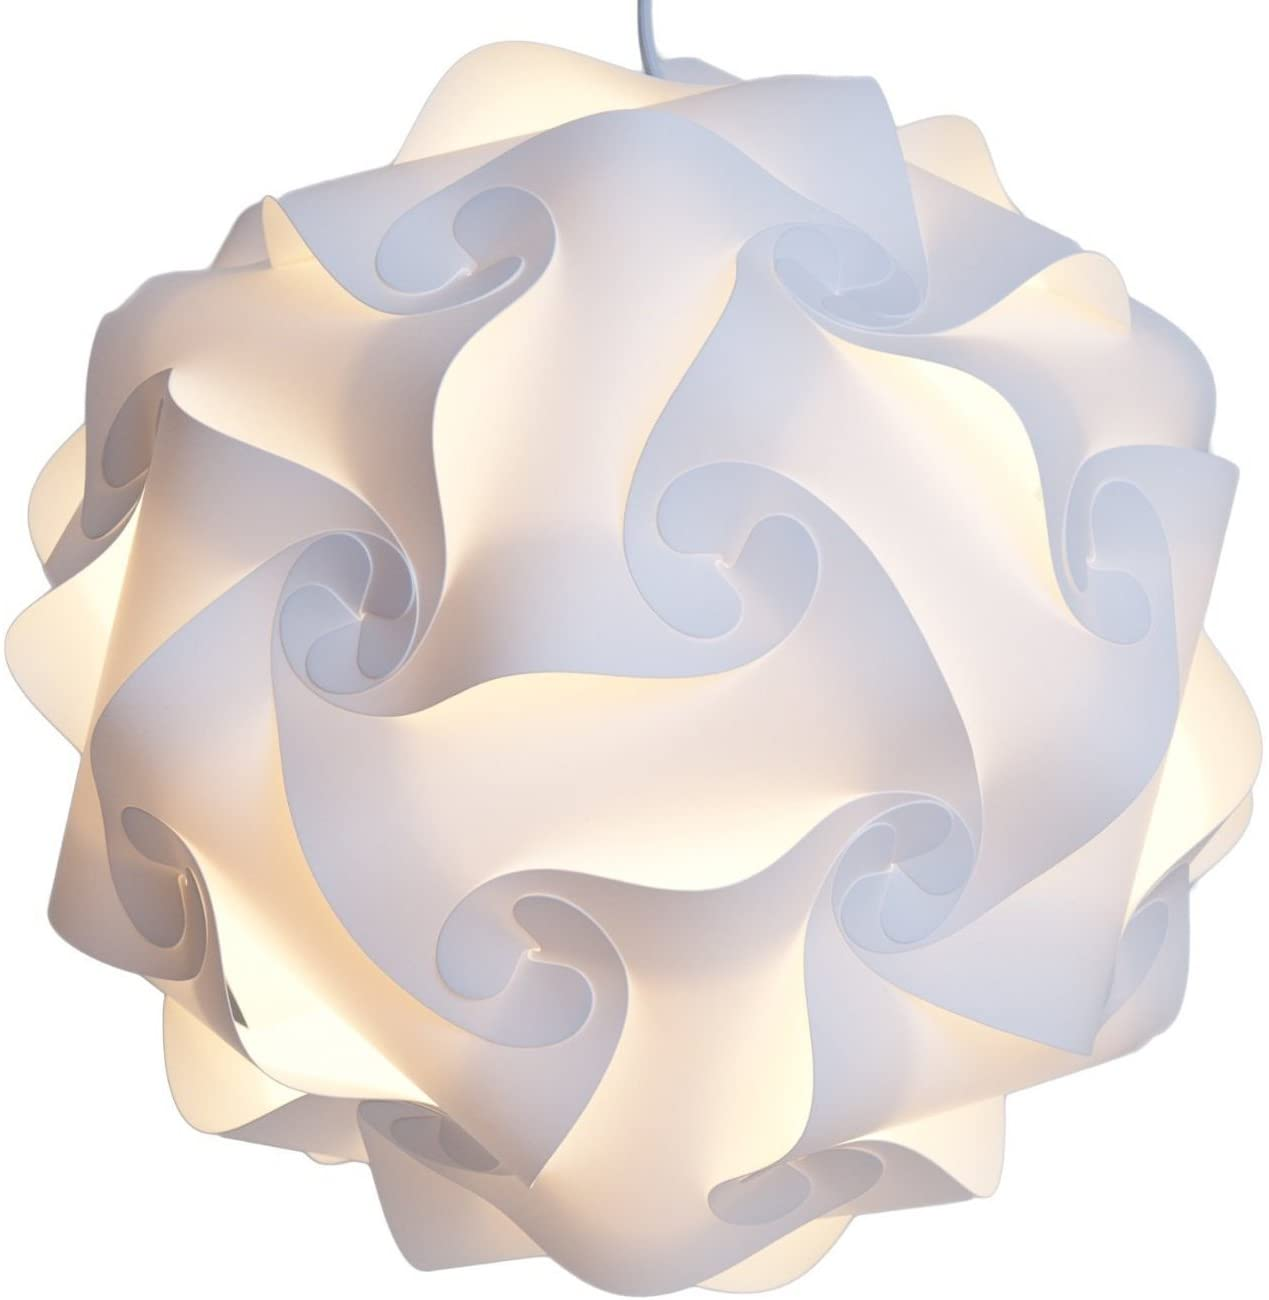 Lightingsky IQ Lamp Shade Toy Self DIY Assembled Puzzle Lights for Room Decoration (White, XL-18 inch)